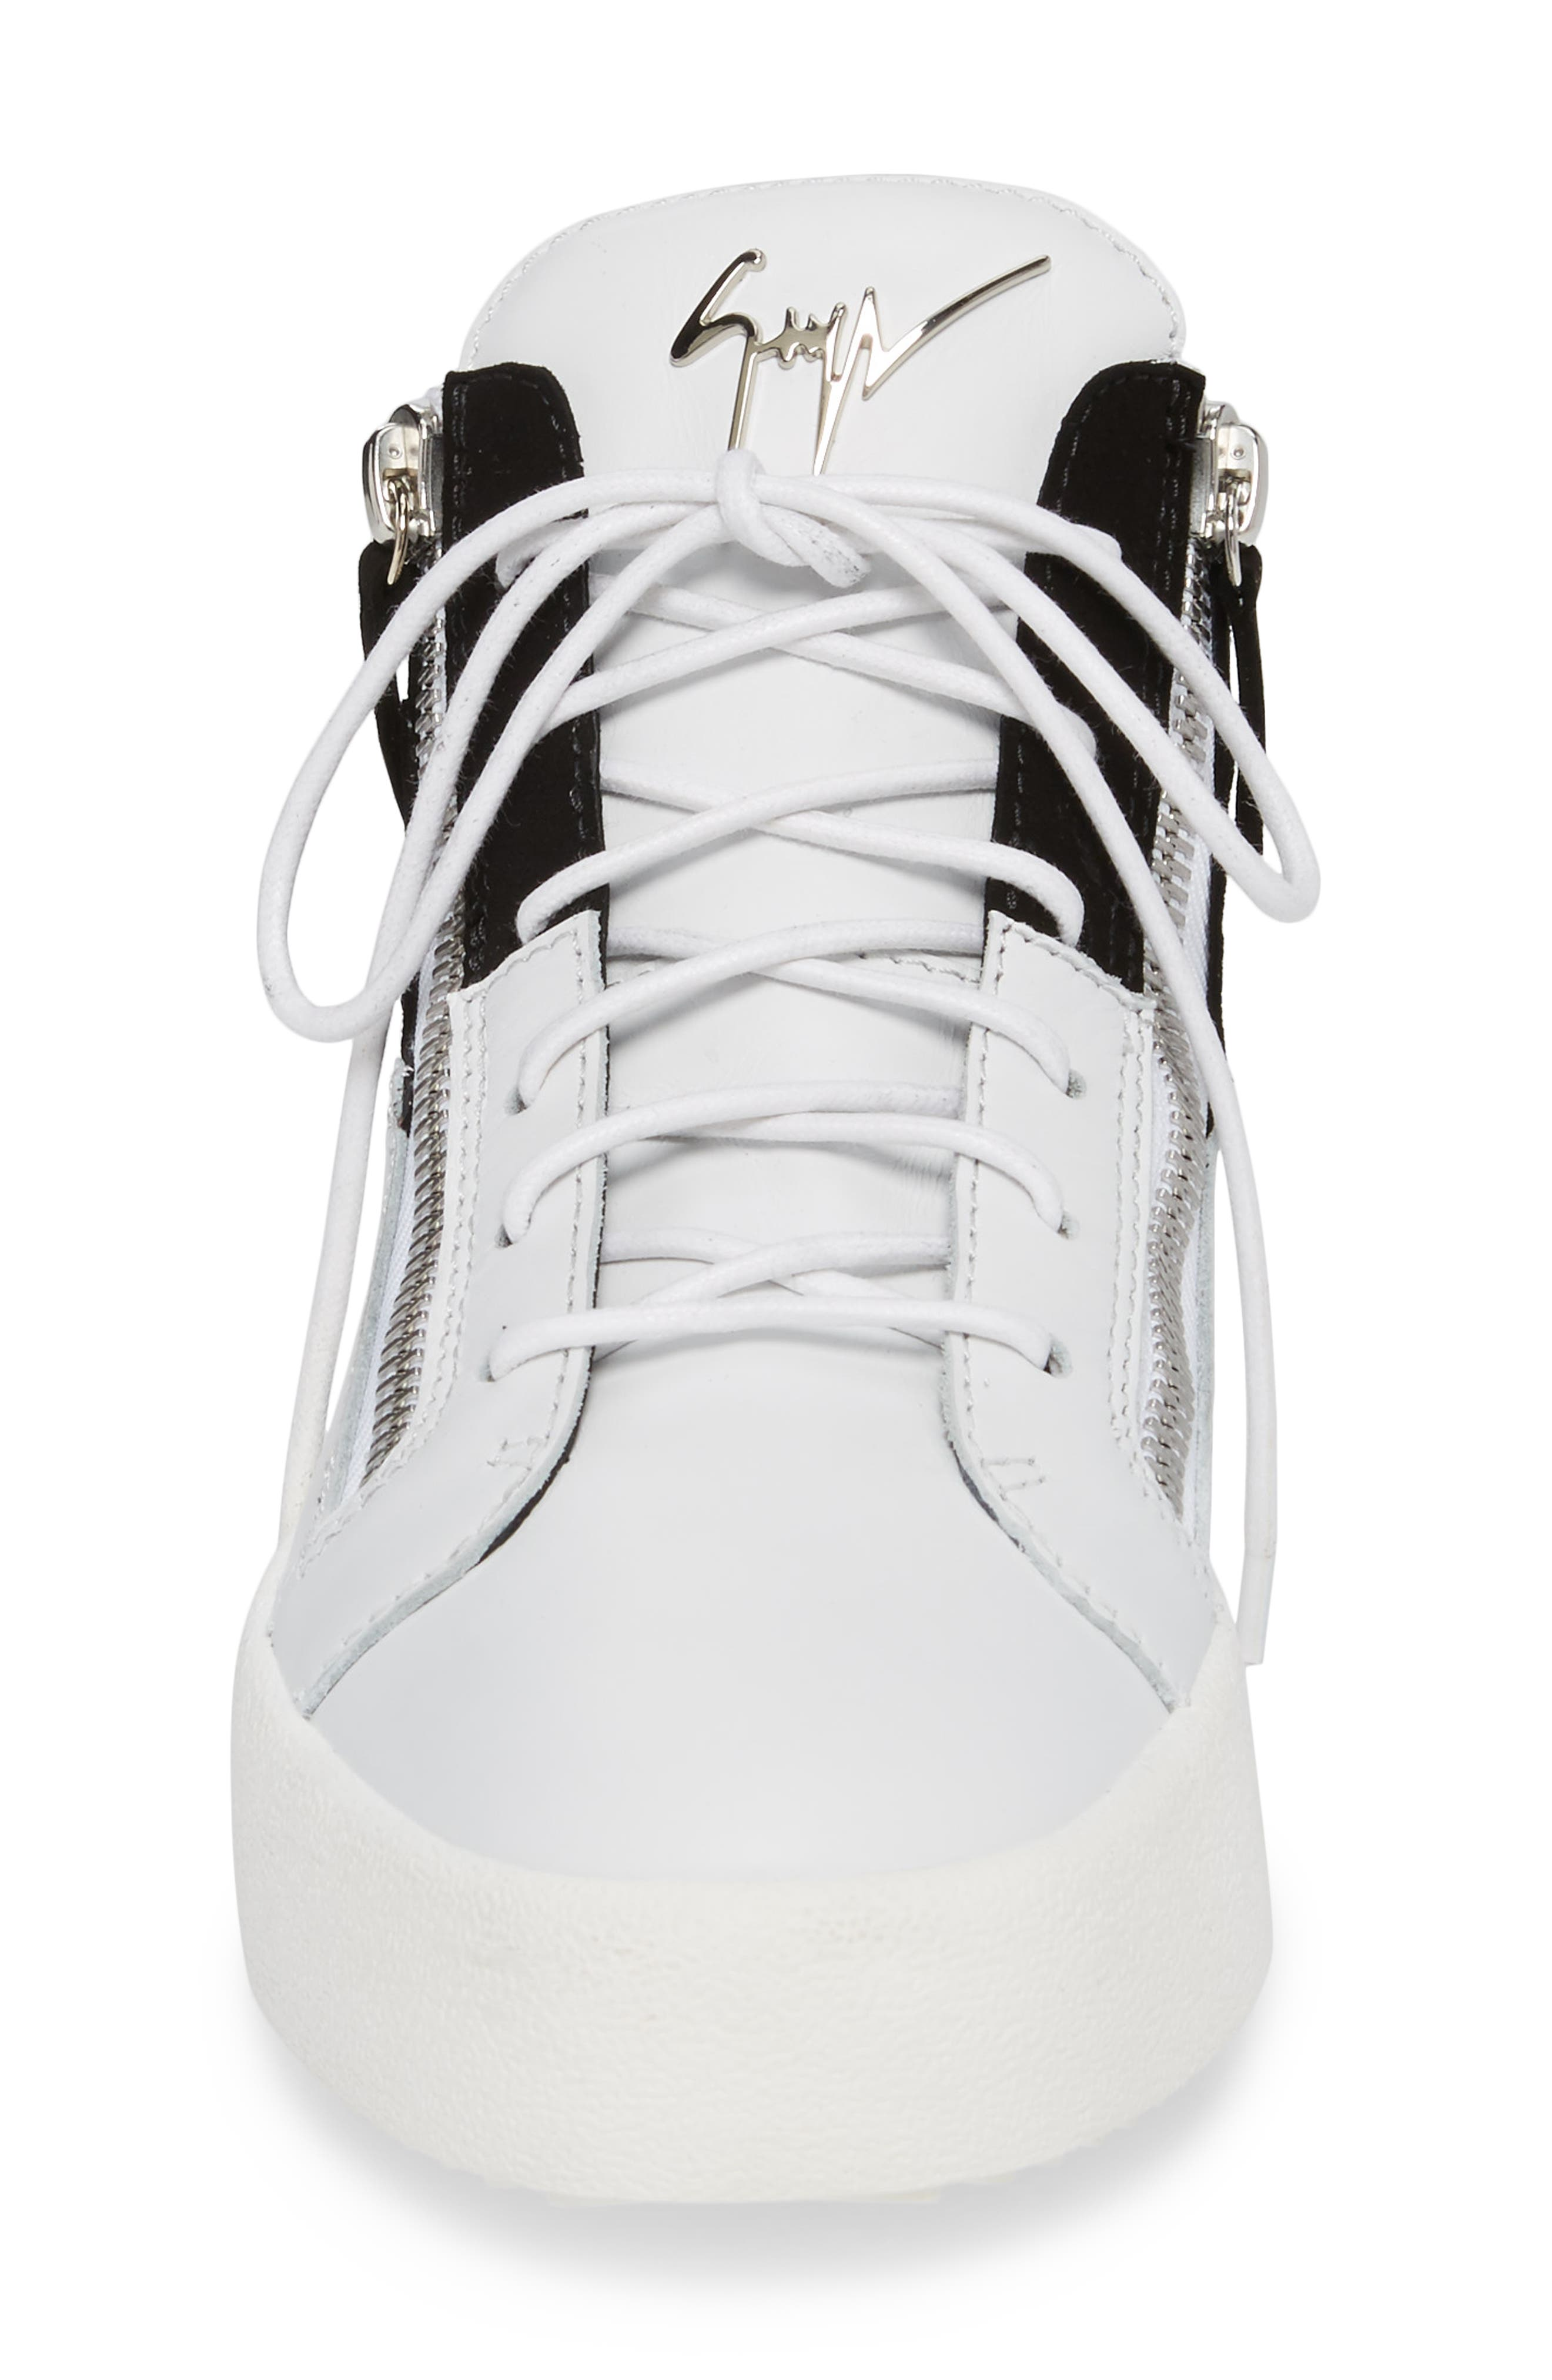 Exposed Sneaker,                             Alternate thumbnail 4, color,                             Black/White